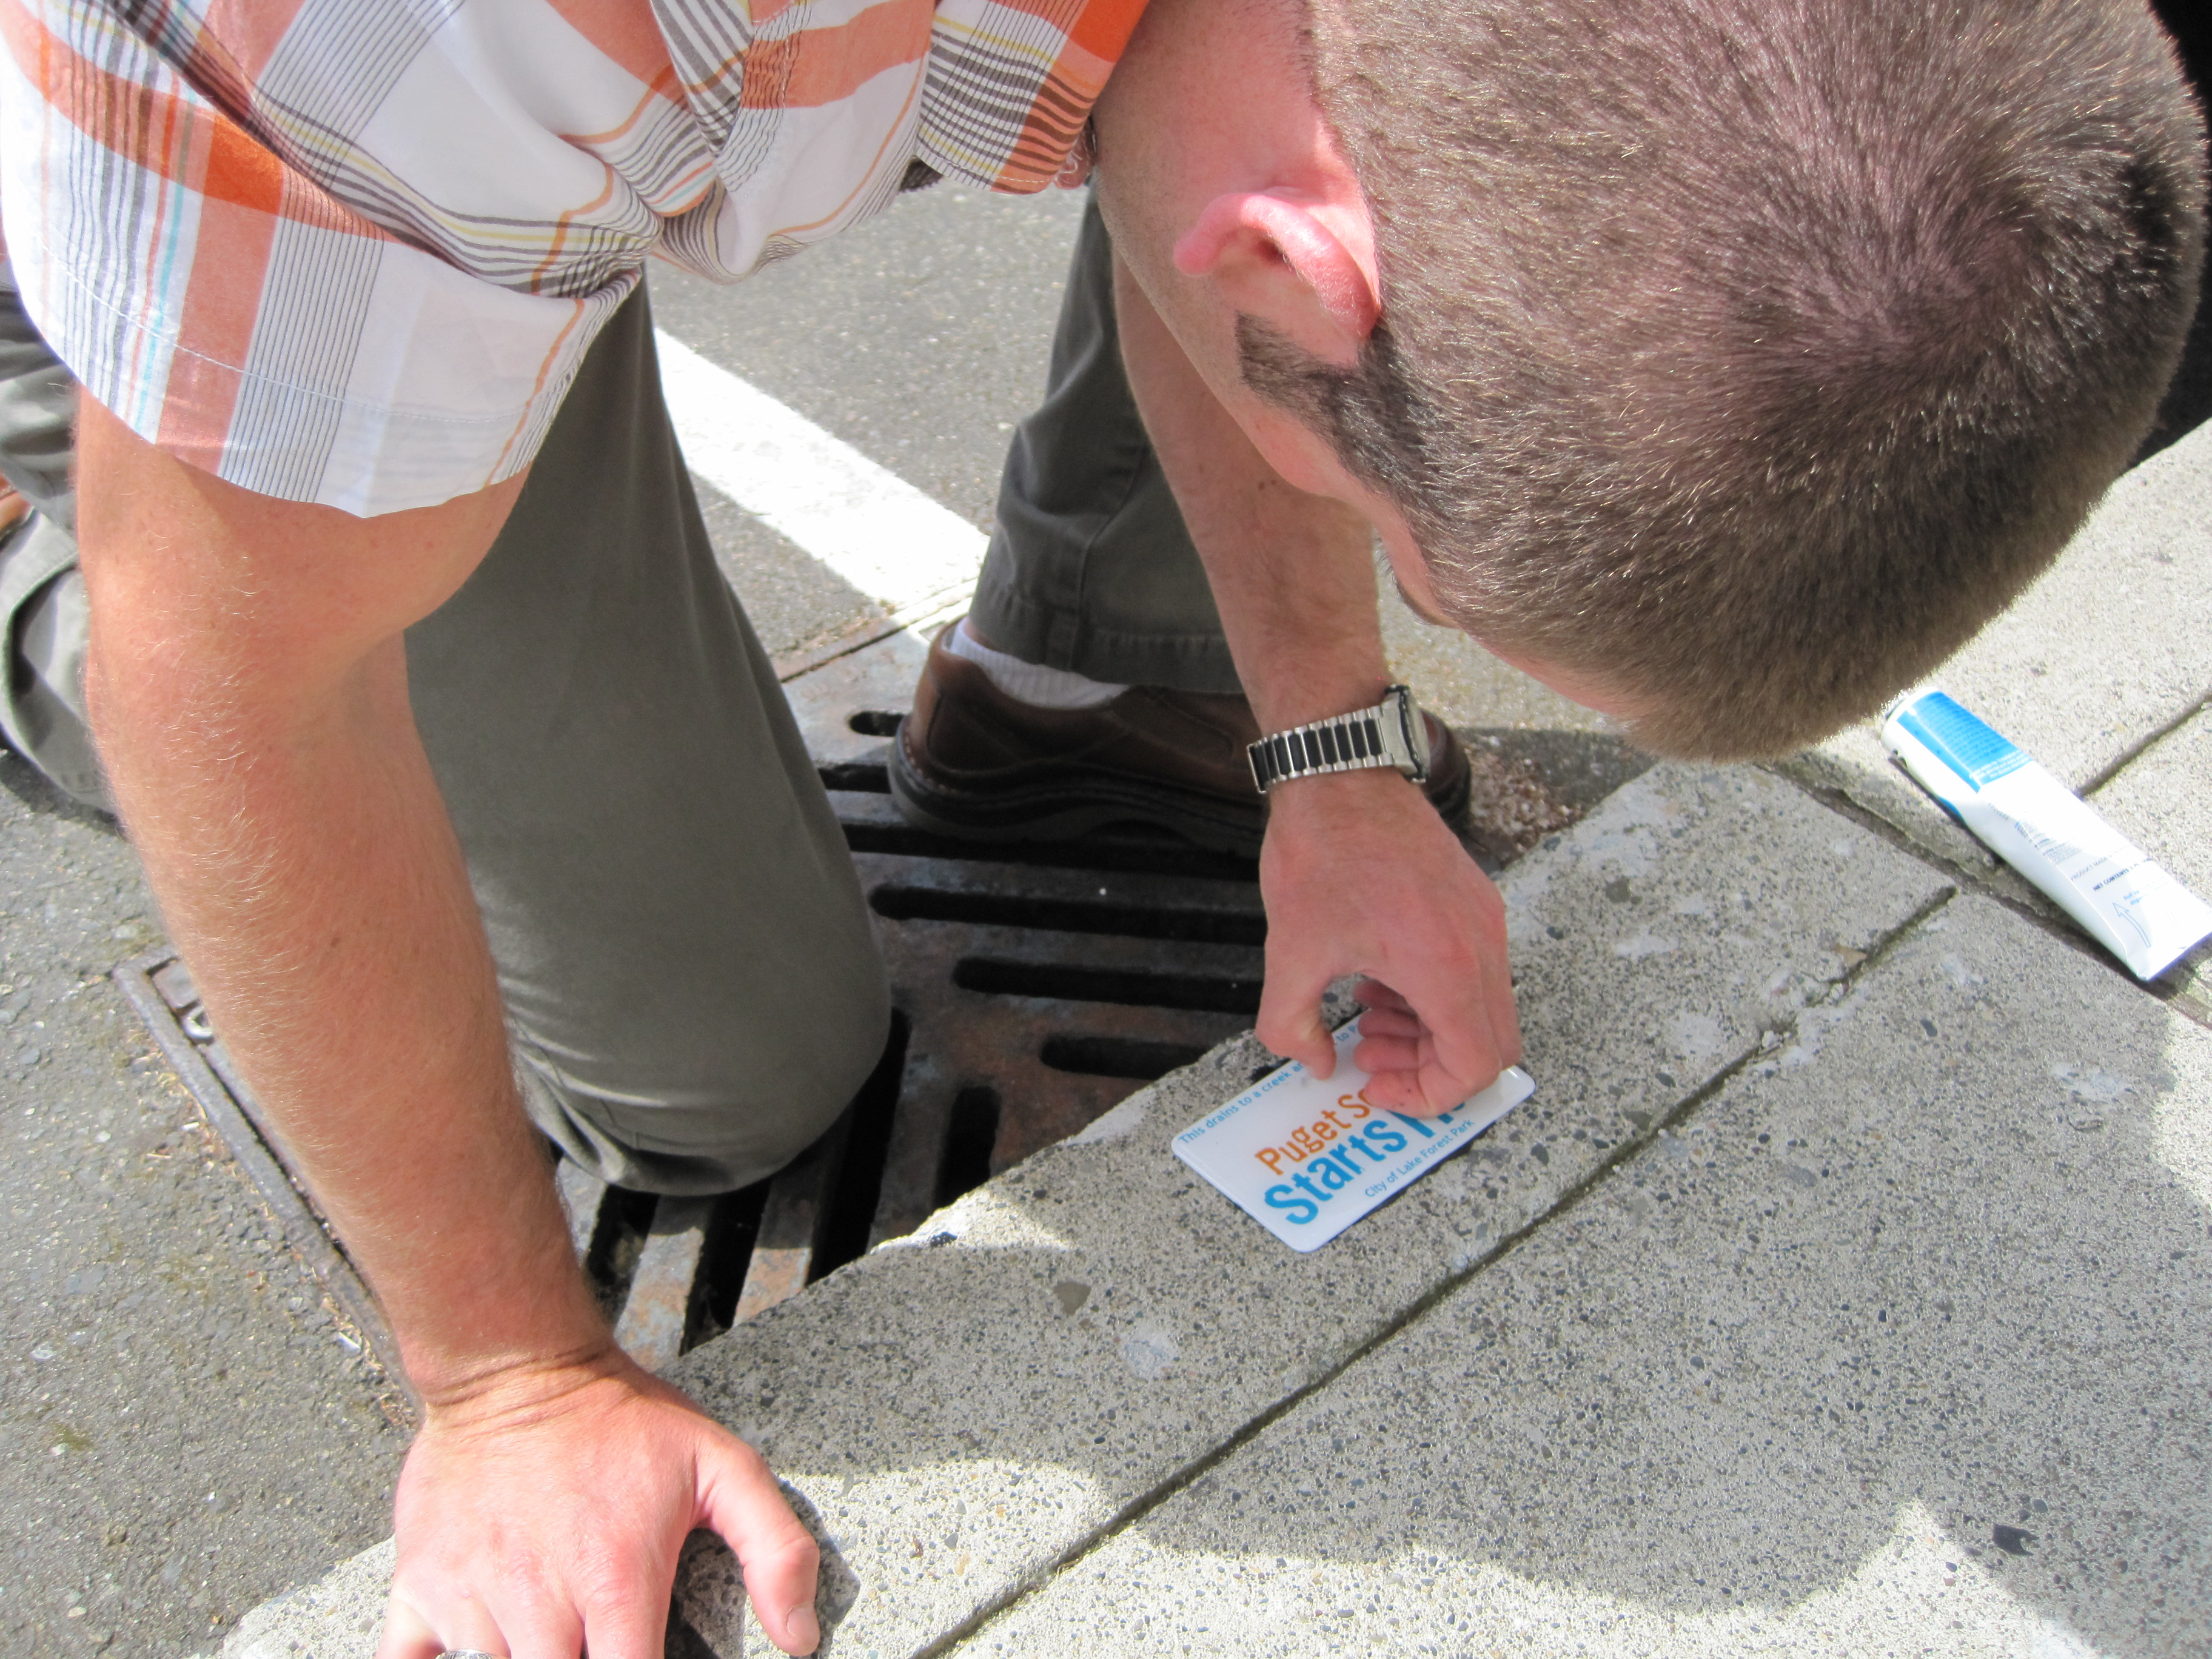 Staff applying storm drain label